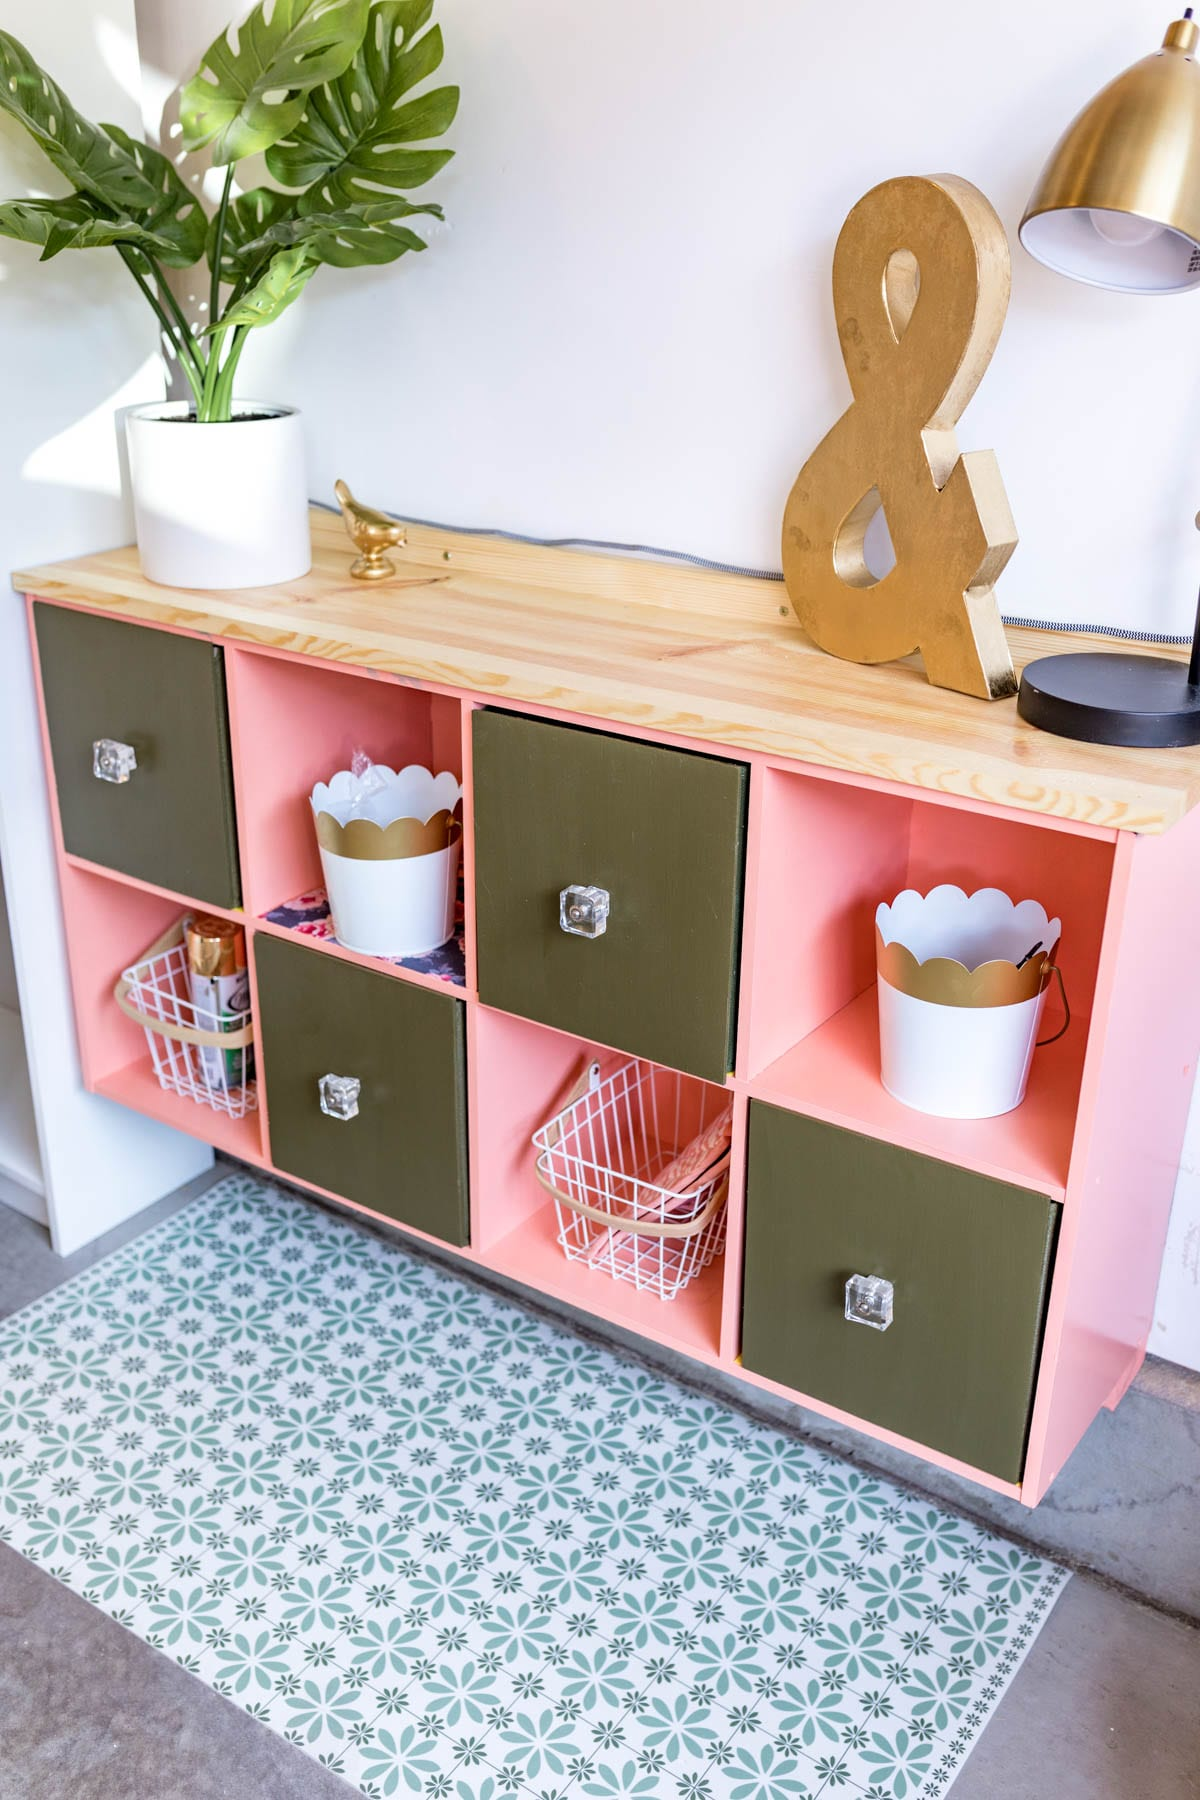 ELEVATE YOUR CUBE STORAGE! cube storage makeover diy | cube storage ideas | cube storage decor | cube storage ideas living room | cube storage ideas office | DIY Home decor ideas | Never Skip Brunch by Cara Newhart | #decor #diy #storage #neverskipbrunch